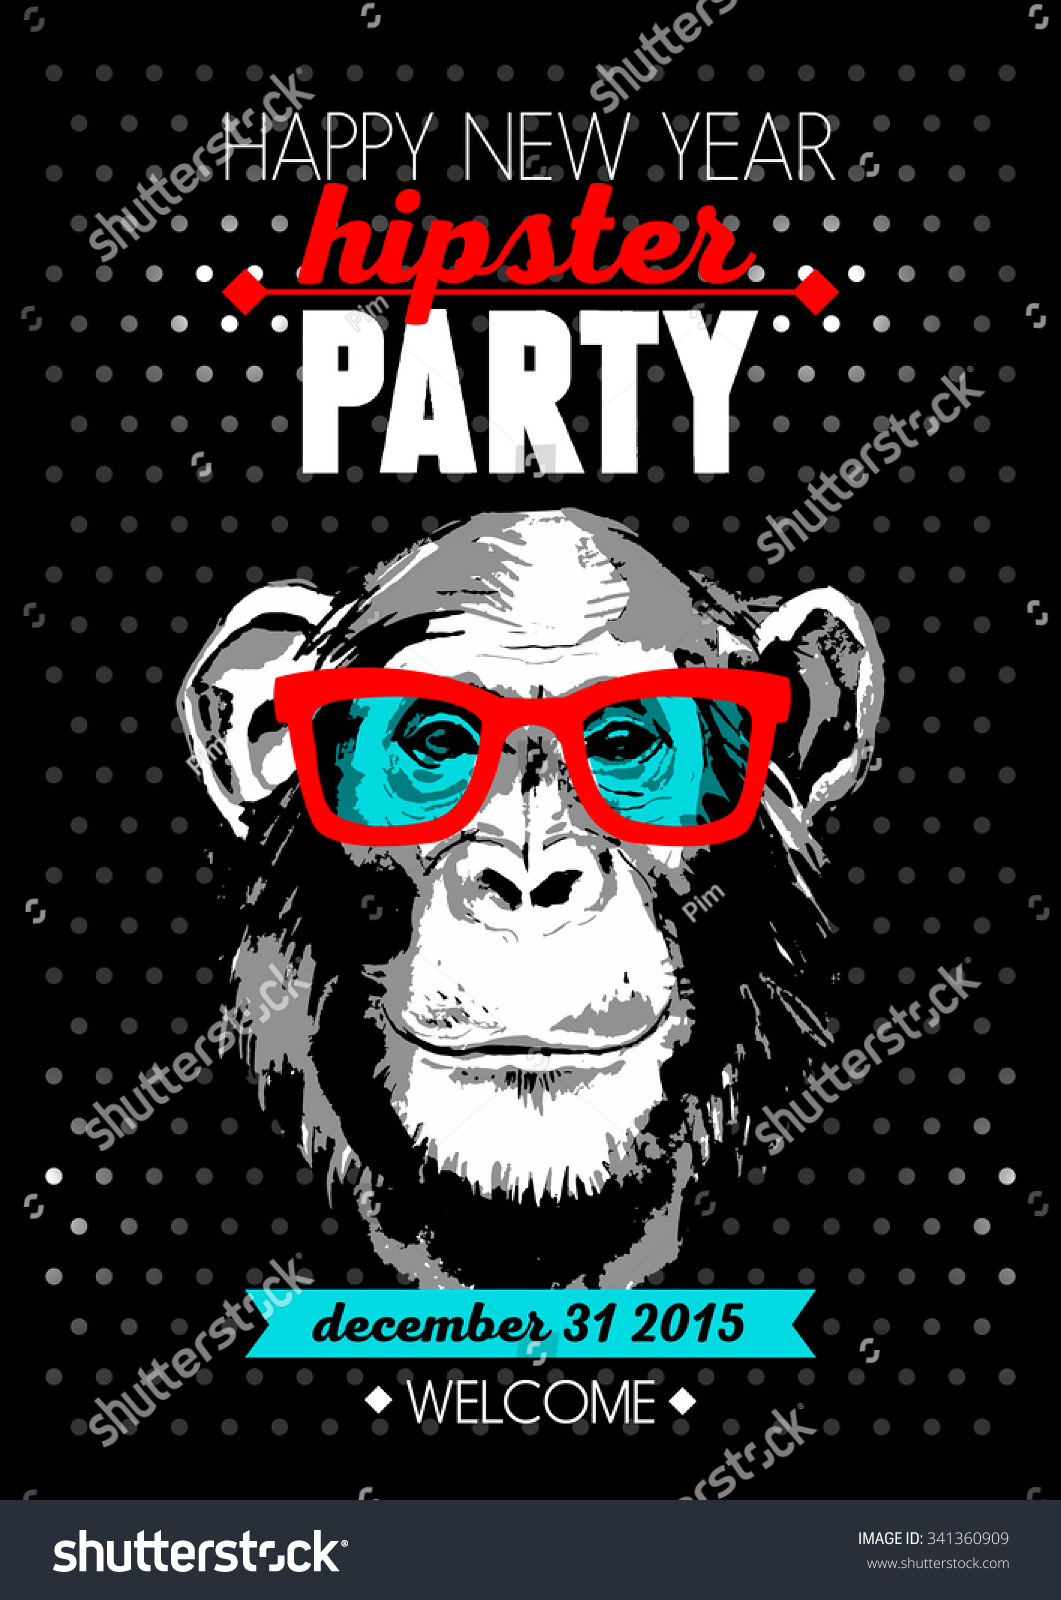 Holiday poster for Merry Christmas and Happy New Year Hipster party with hand drawn sketch monkey portrait Vector illustration for card print fashion design and t-shirt graphics